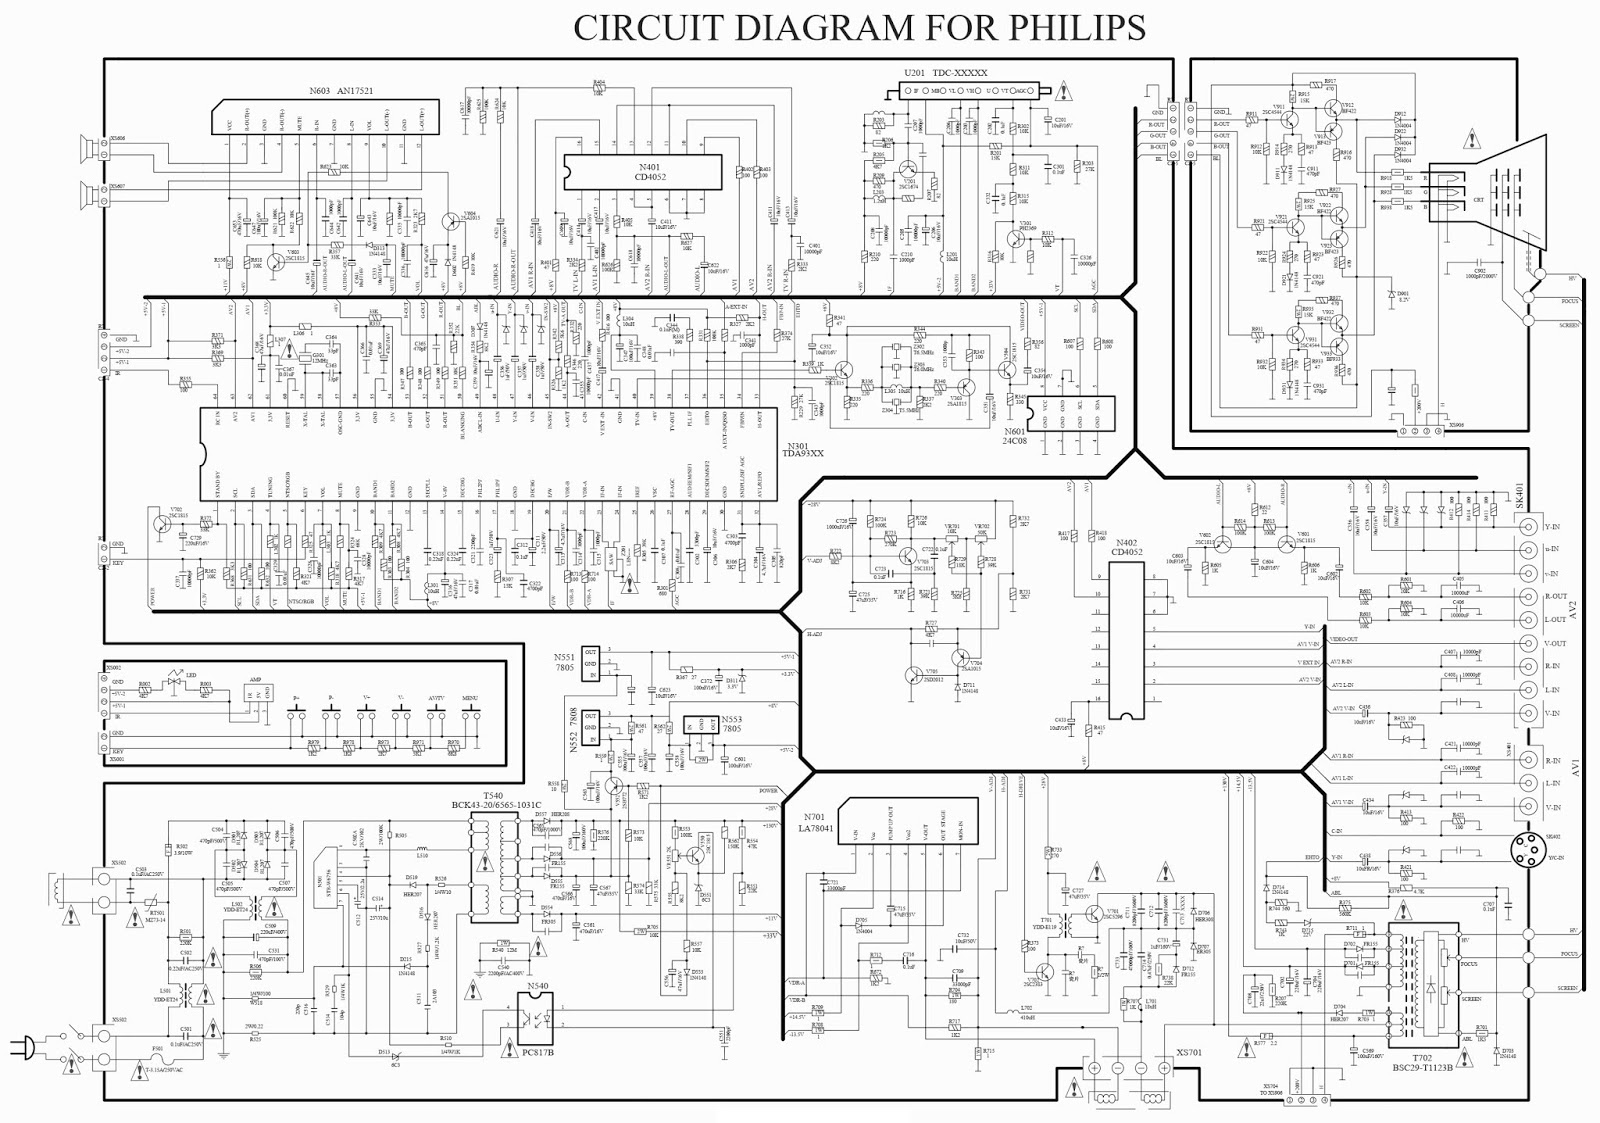 Electronic Inspirations: Philips color TV circuit diagram